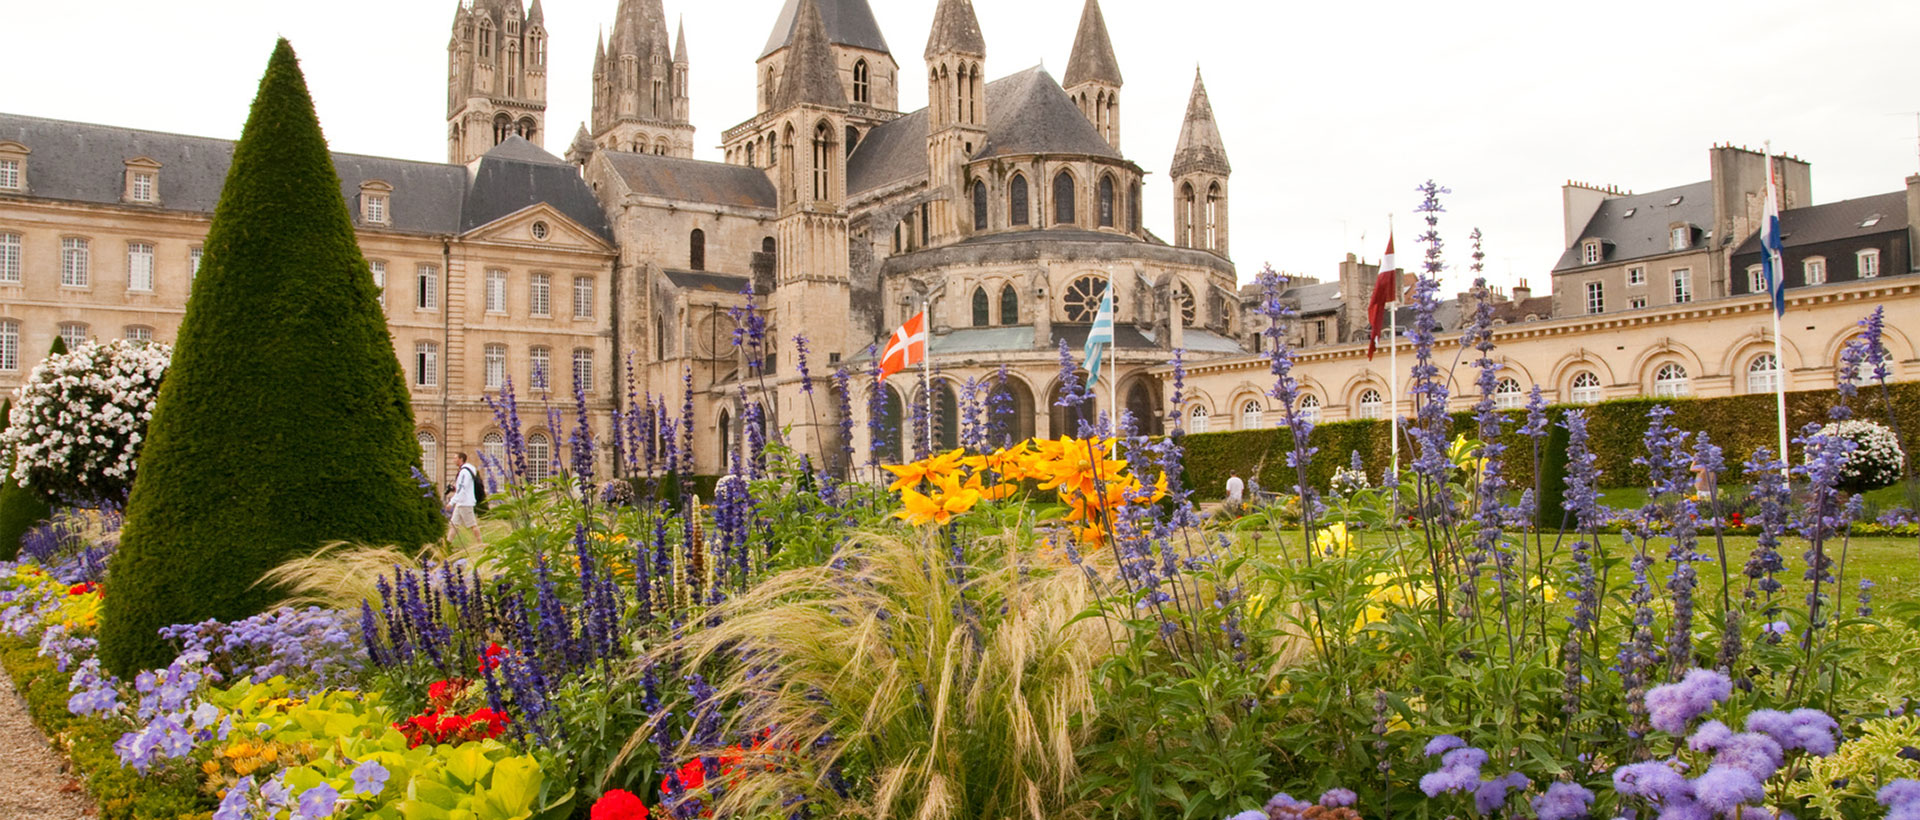 Bus to Caen from $4.99 | Travel with FlixBus